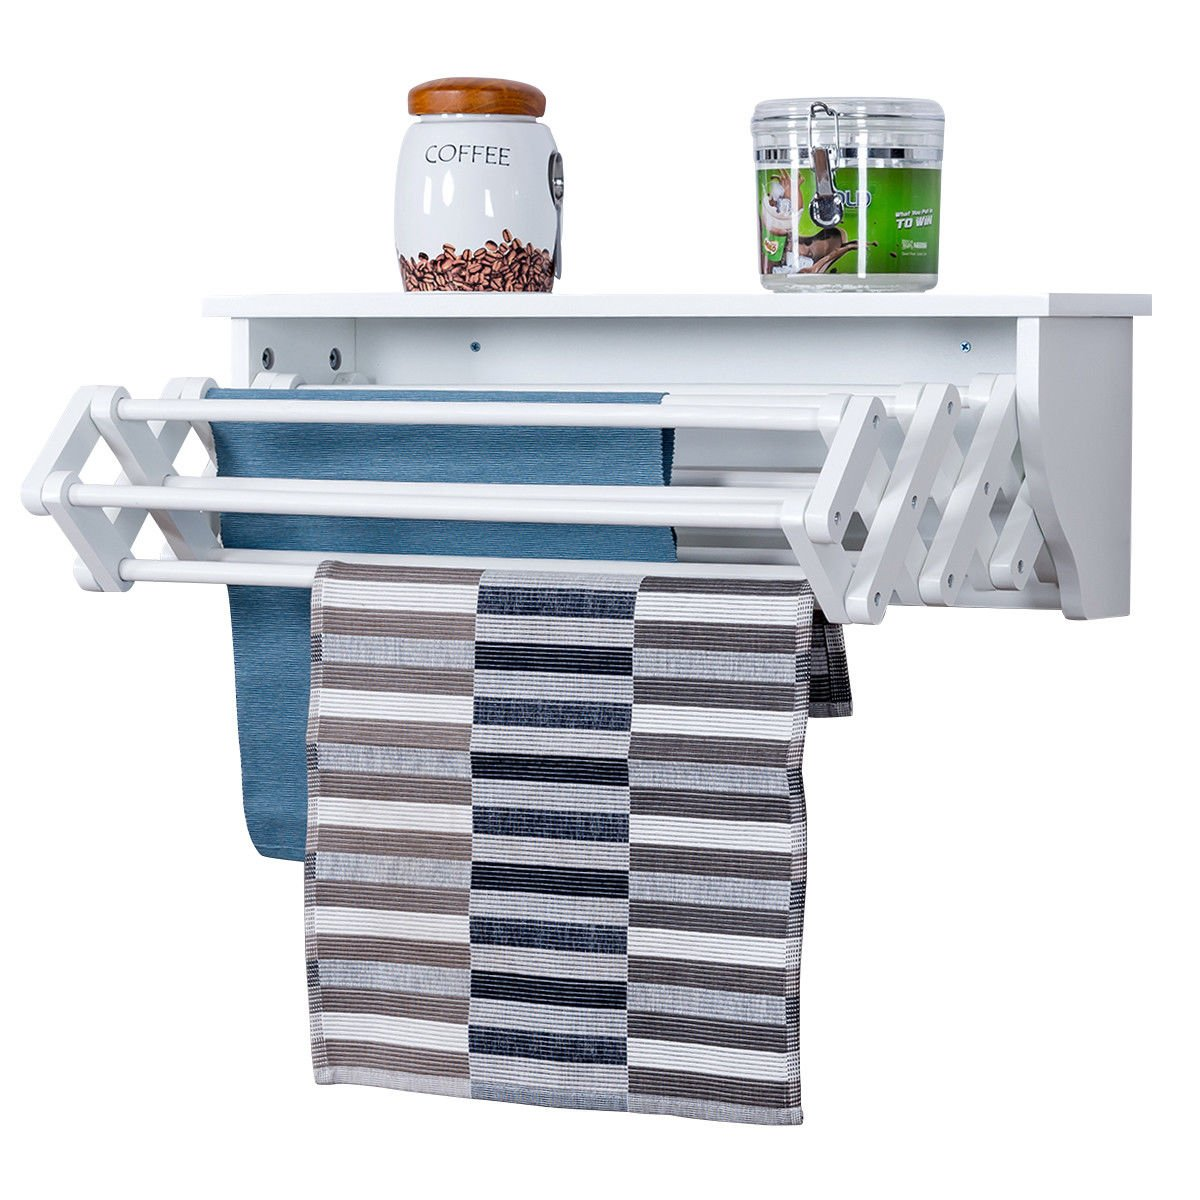 Globe House Products GHP White Pine Wood Wall-Mounted Folding CLothes Towel Drying Rack with Top Shelf by Globe House Products (Image #1)